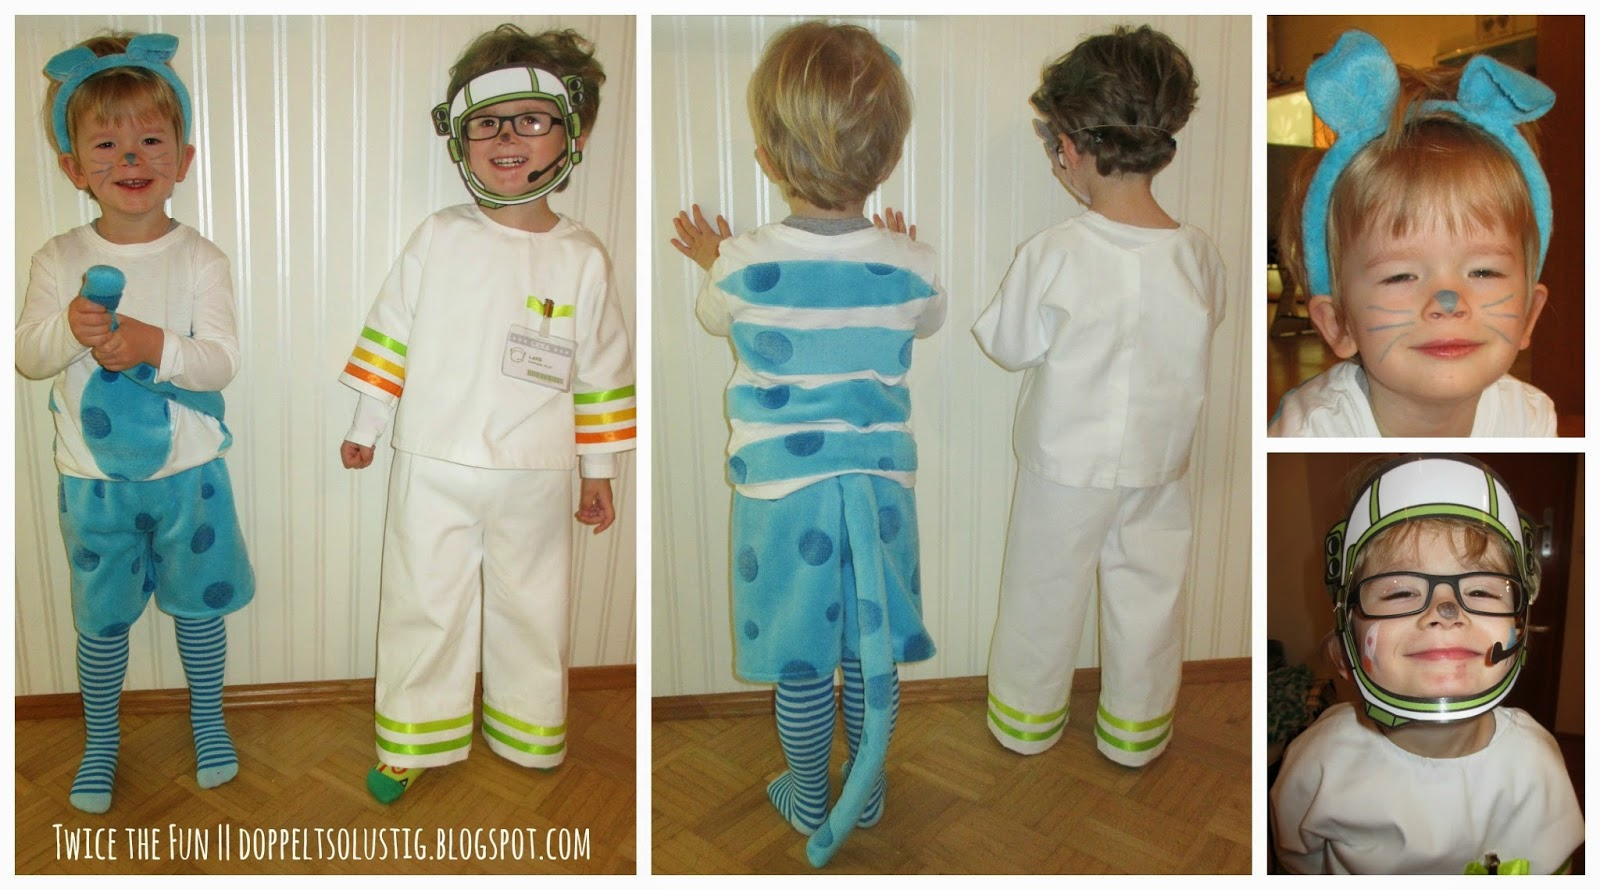 Cat and astronaut costumes || Twice the fun